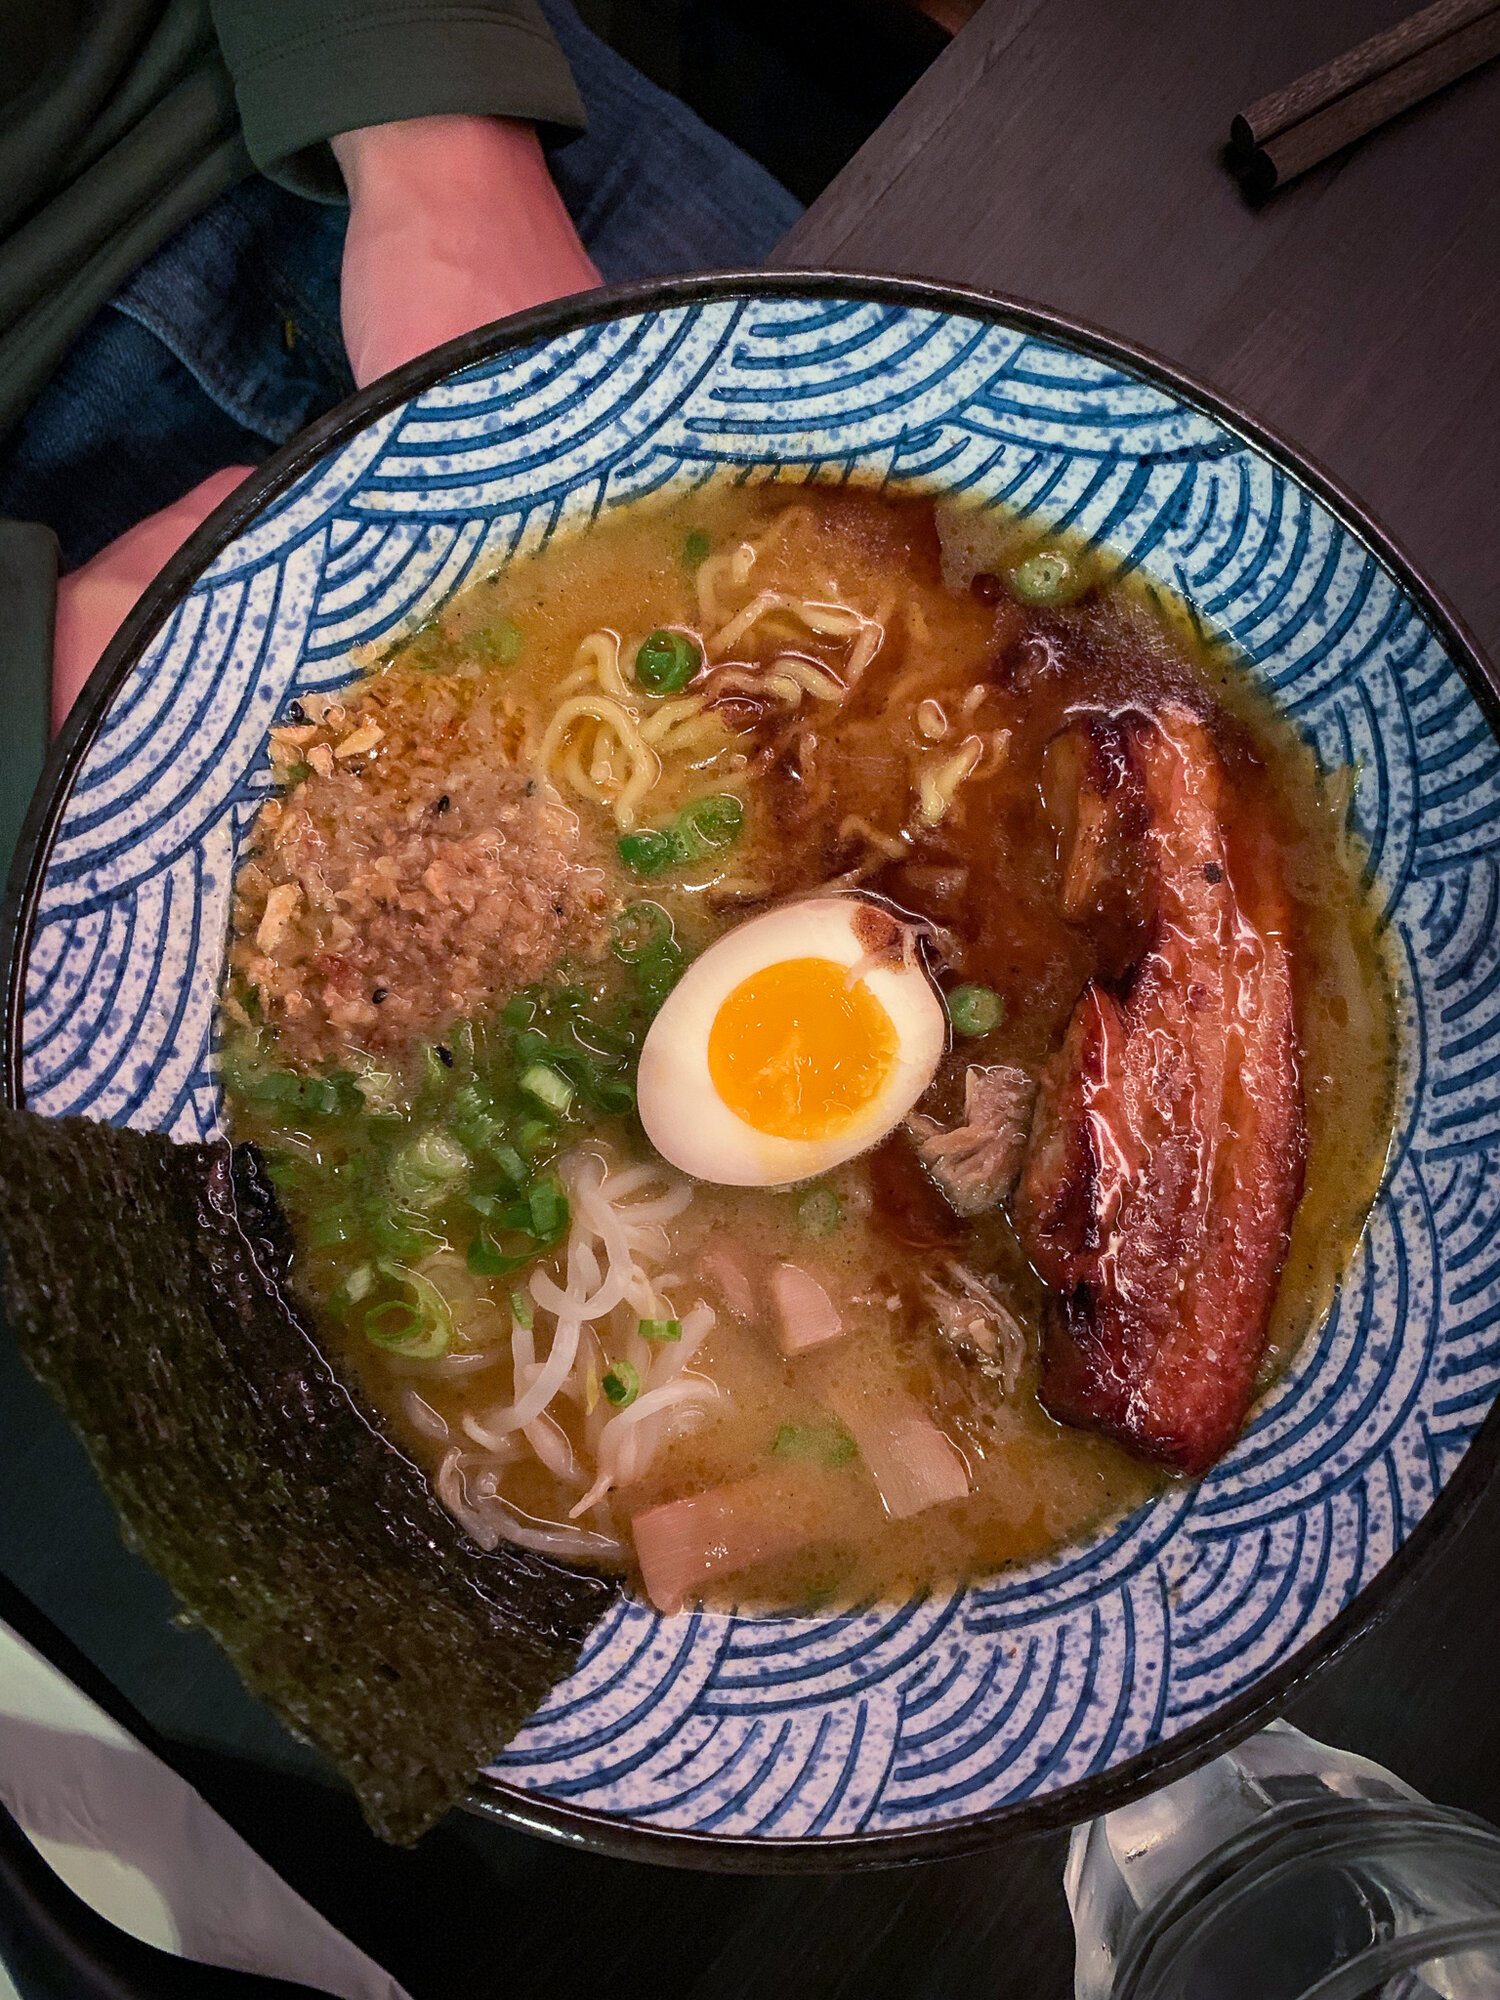 Signature Pork Ramen:  thick tonkotsu style 20 hour pork broth, pork chashu, 1/2 golden egg, bamboo shoots, bean sprouts, scallion, black garlic oil